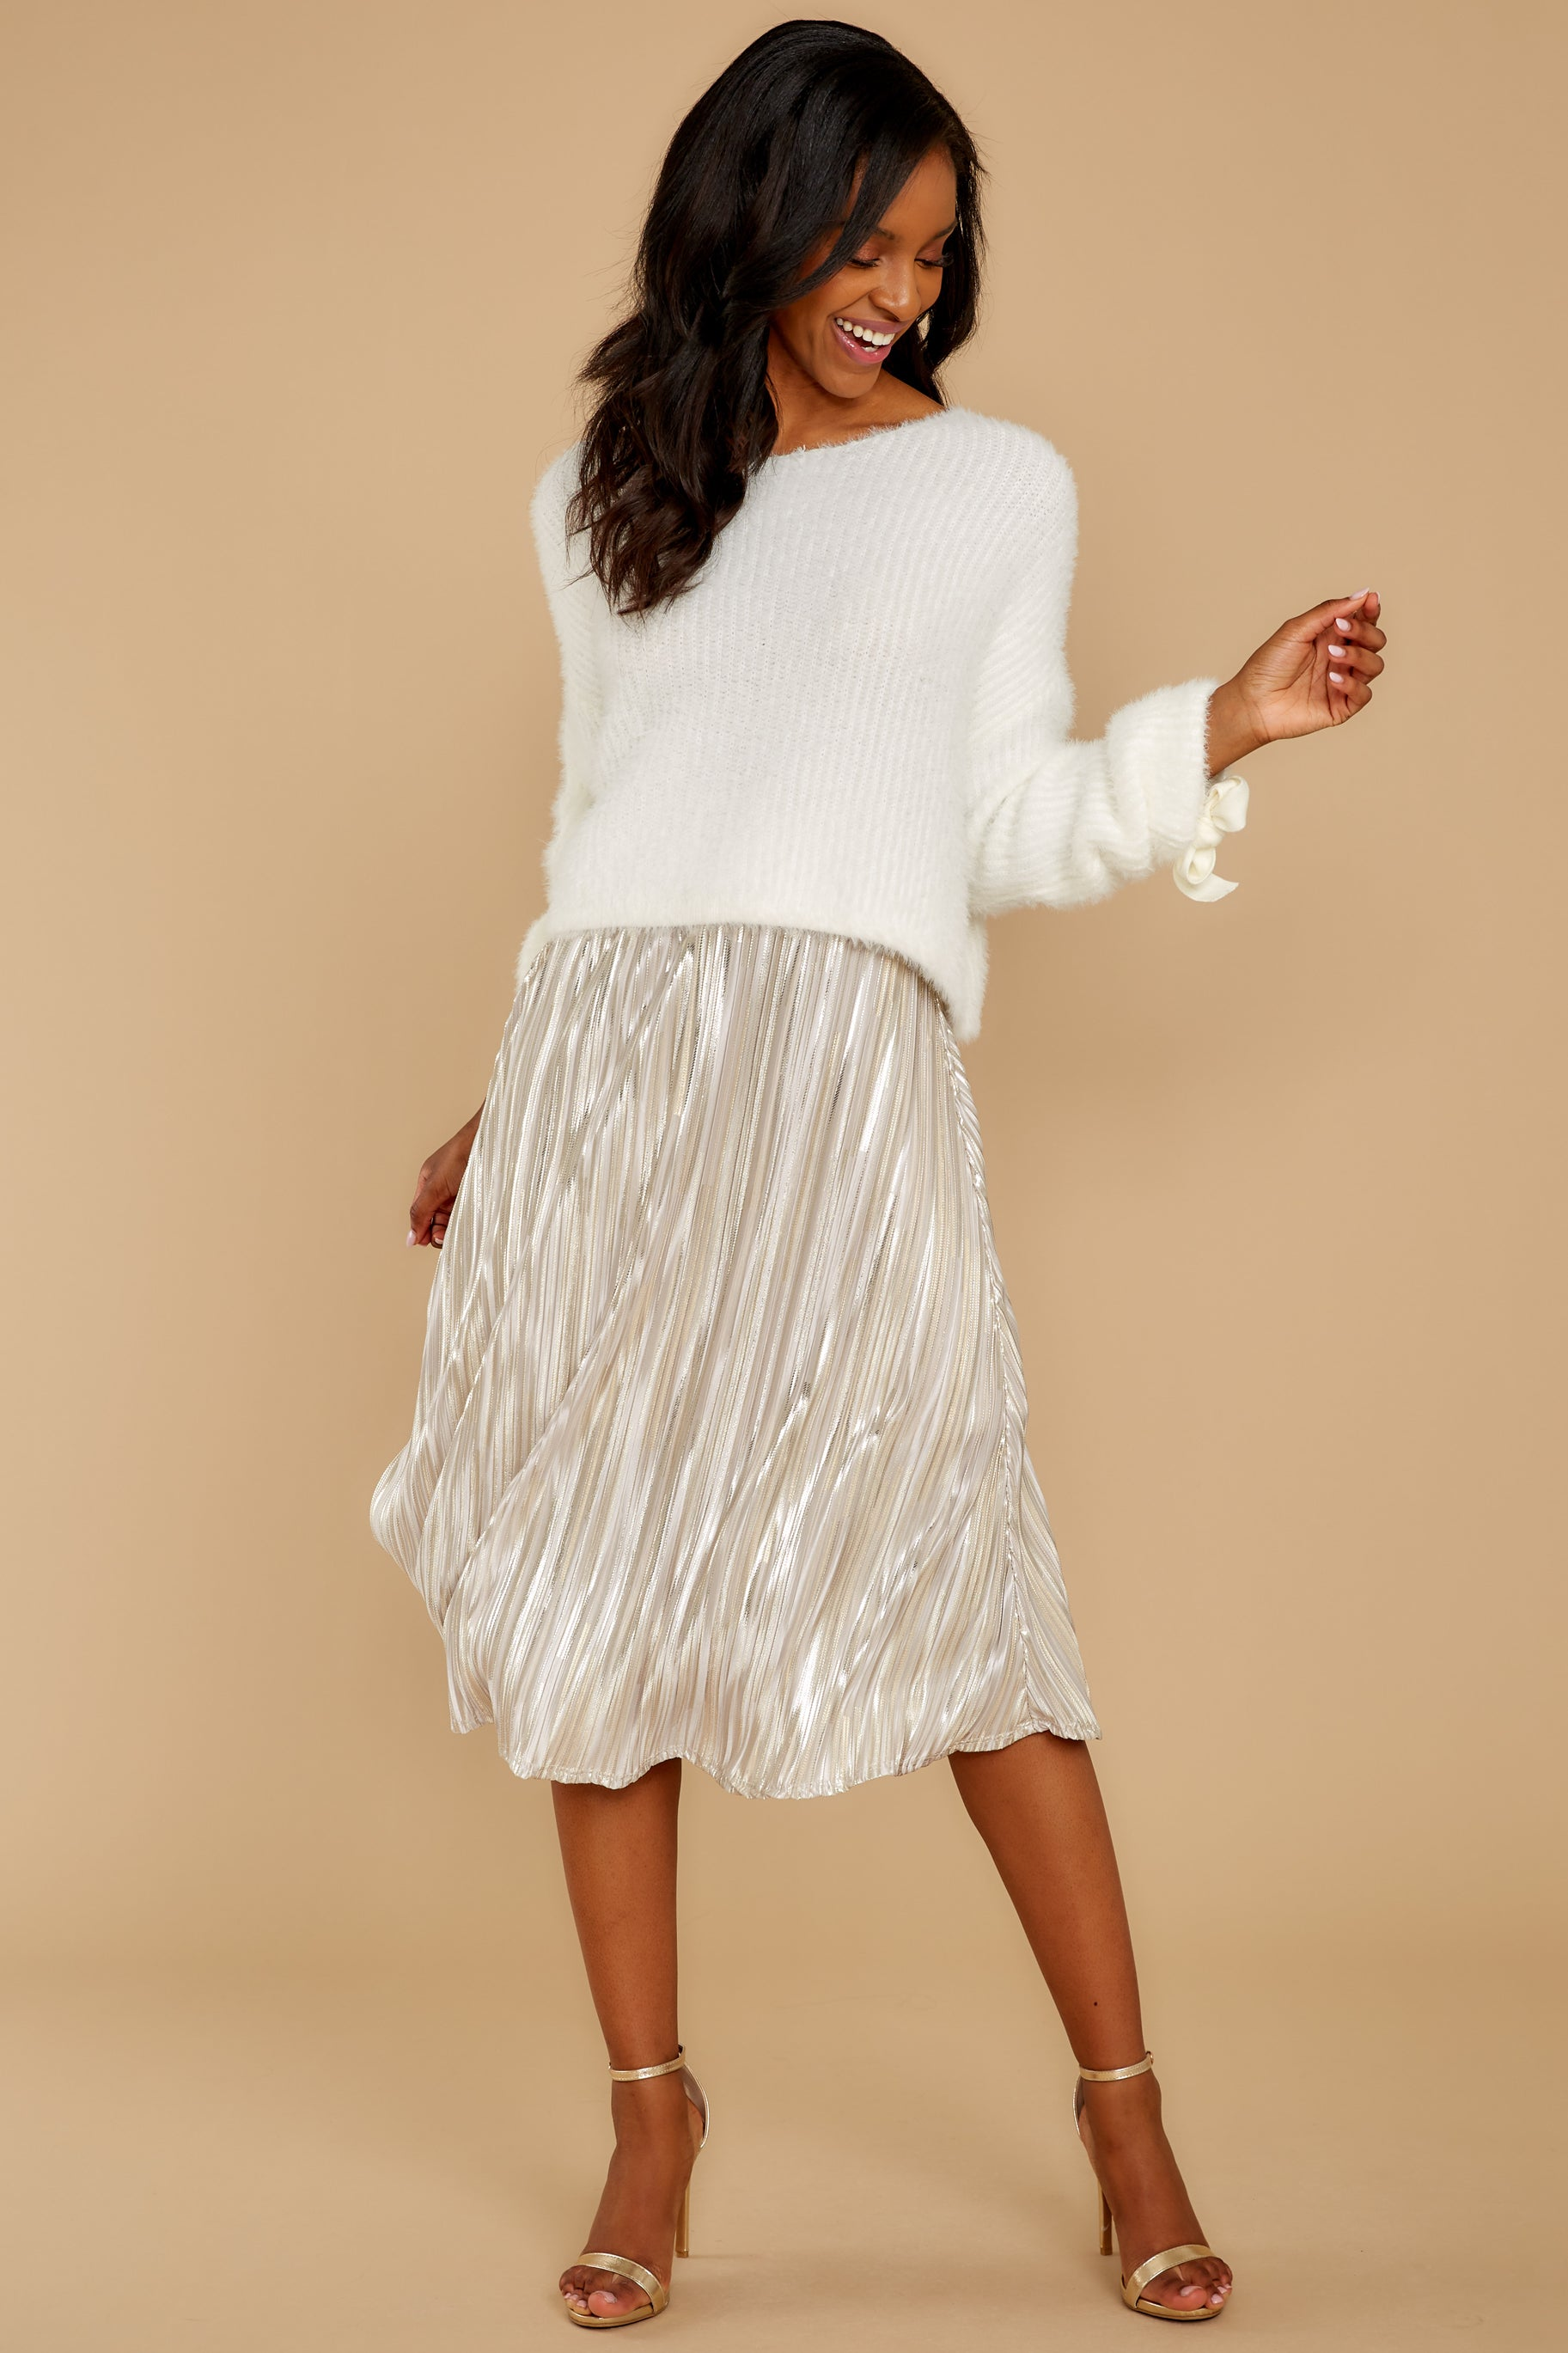 8 A Thing For You Champagne Midi Skirt at reddress.com